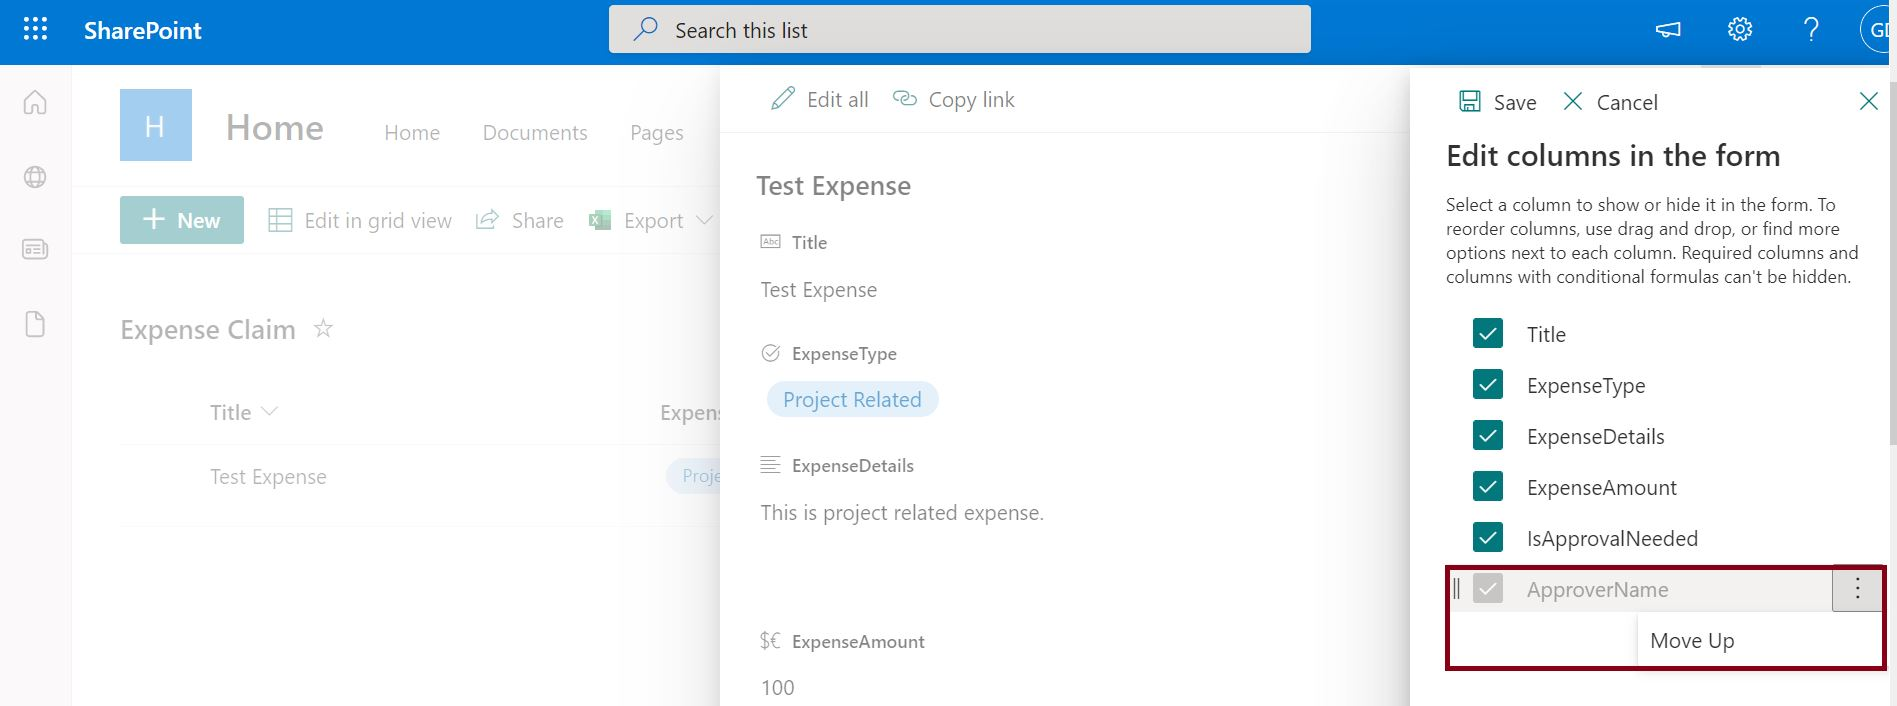 Edit conditional formula in modern SharePoint Online list is hidden when the column is required